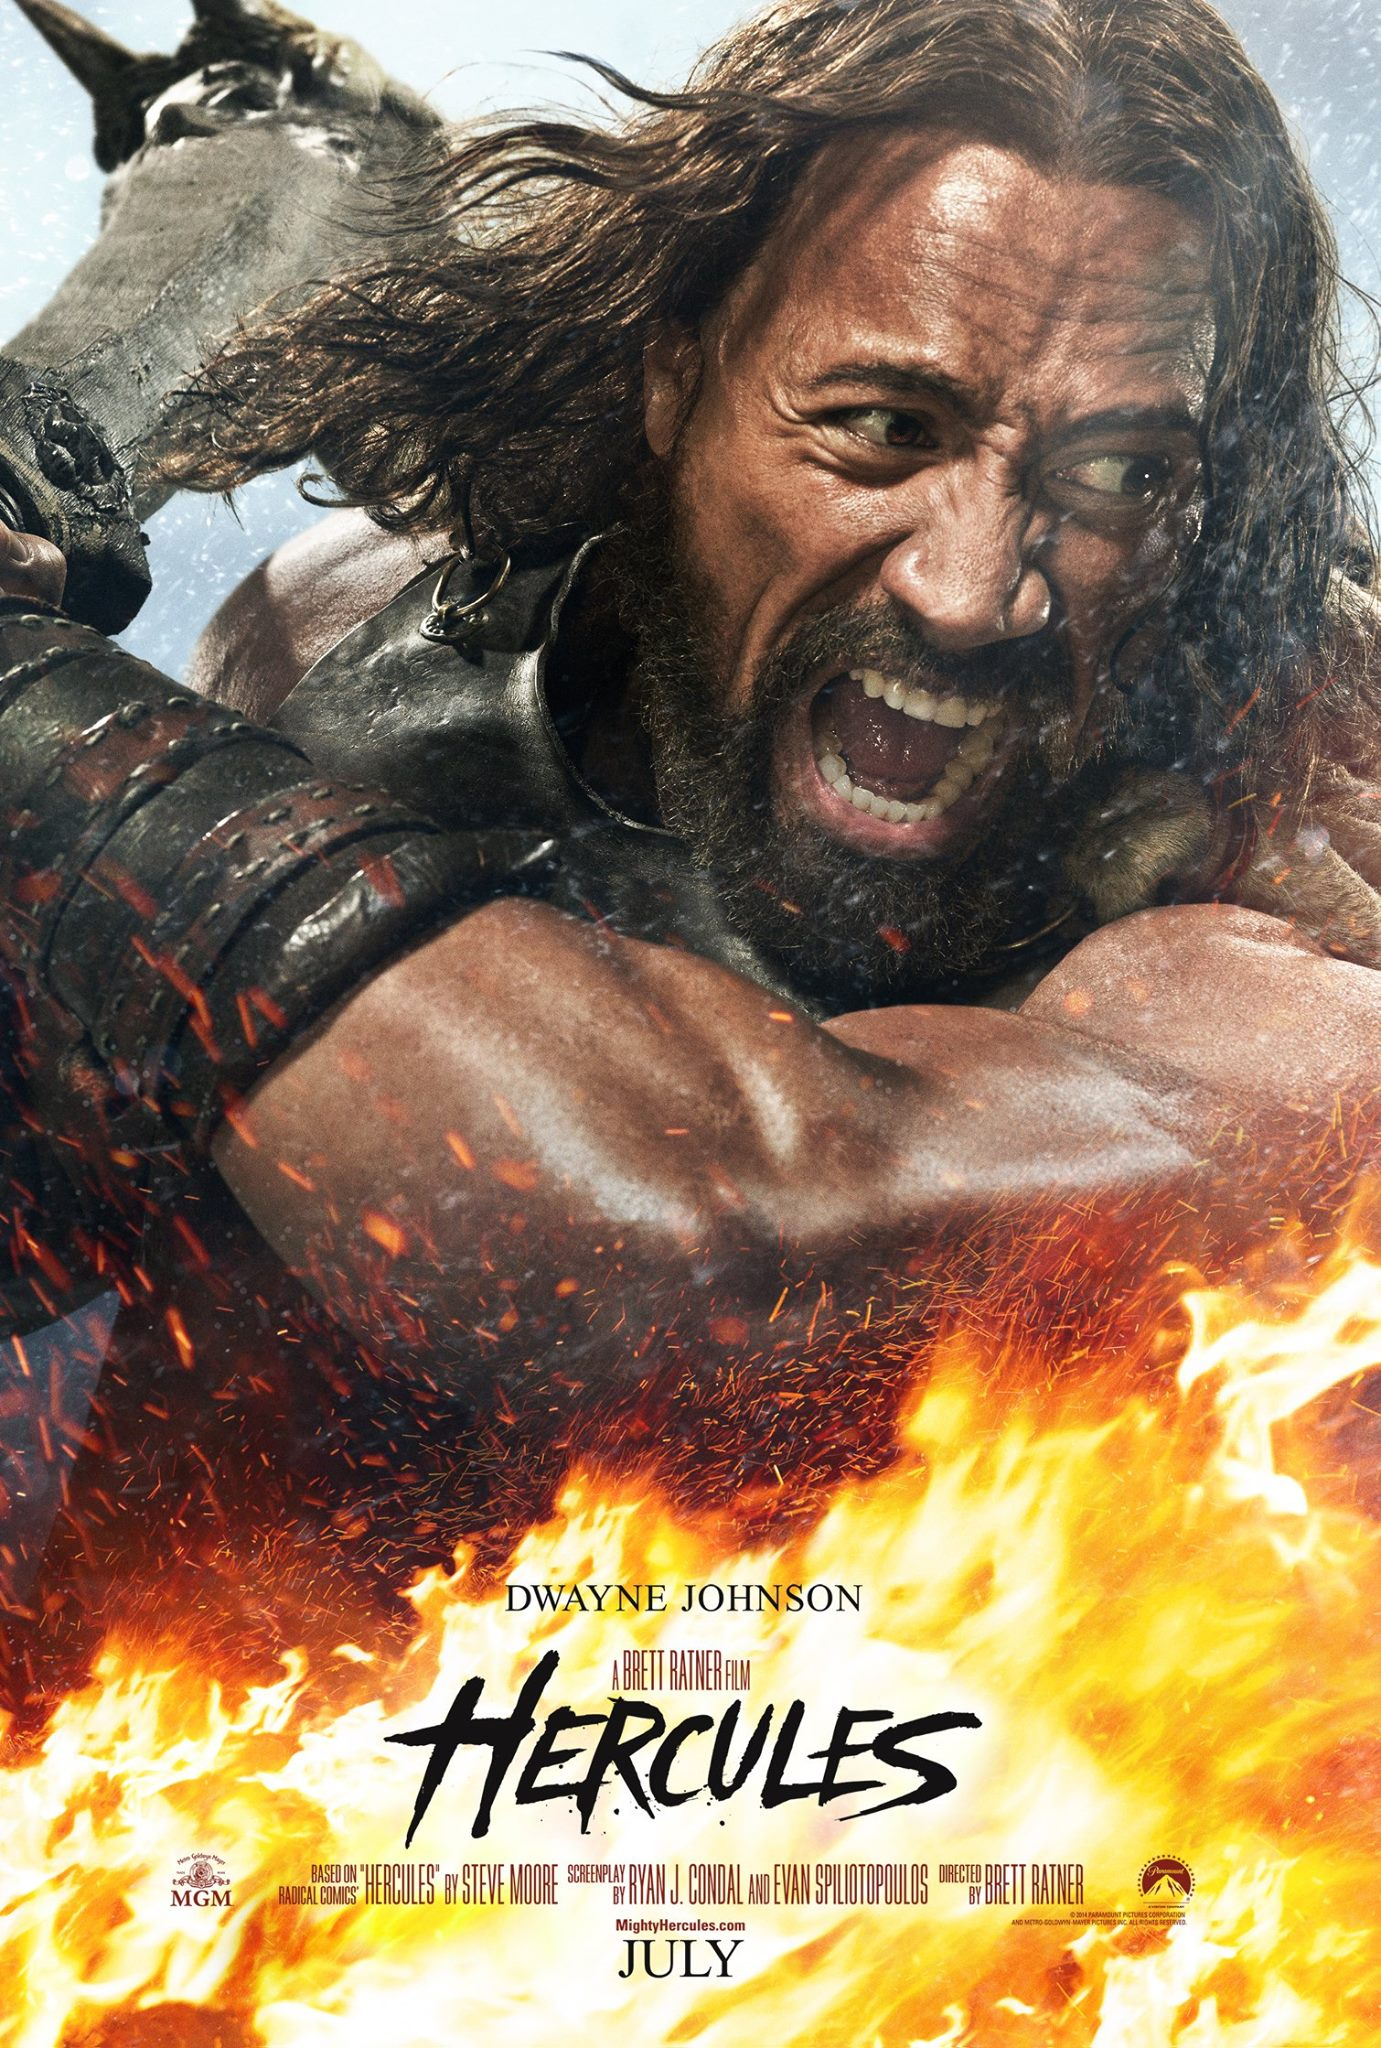 Hercules-Official Poster Banner PROMO XXLG-25MARCO2014